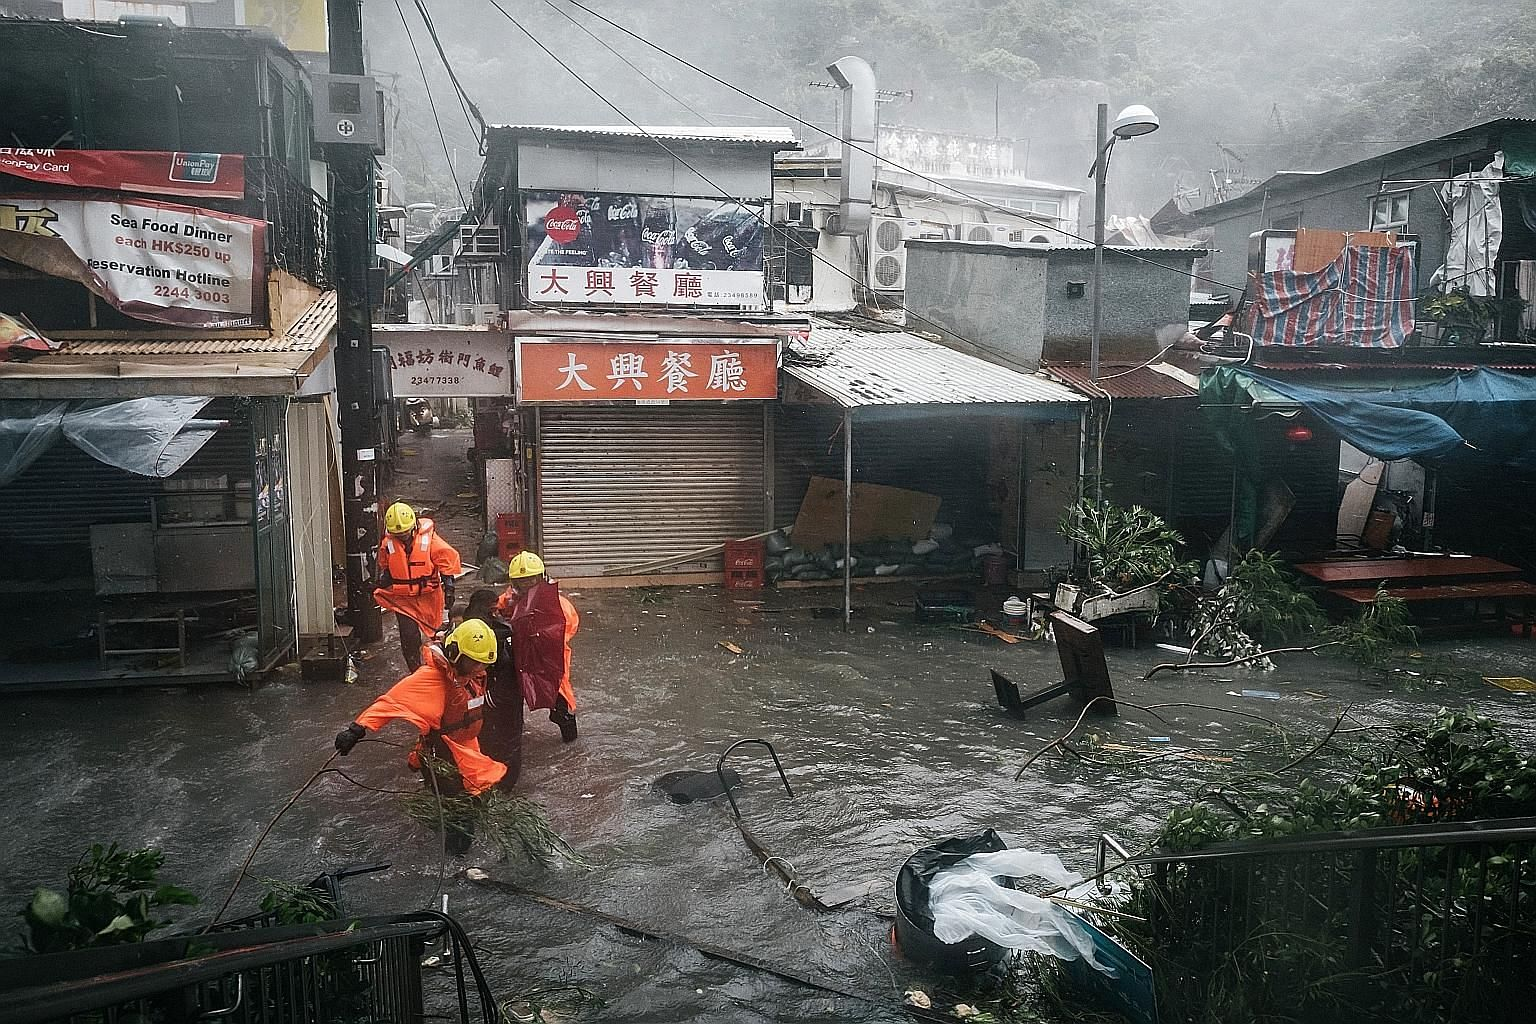 Firefighters escorting people through floodwaters as Typhoon Mangkhut lashed Hong Kong yesterday. The most powerful typhoon of the year was reported yesterday evening to be weakening as it moved deeper into southern China.